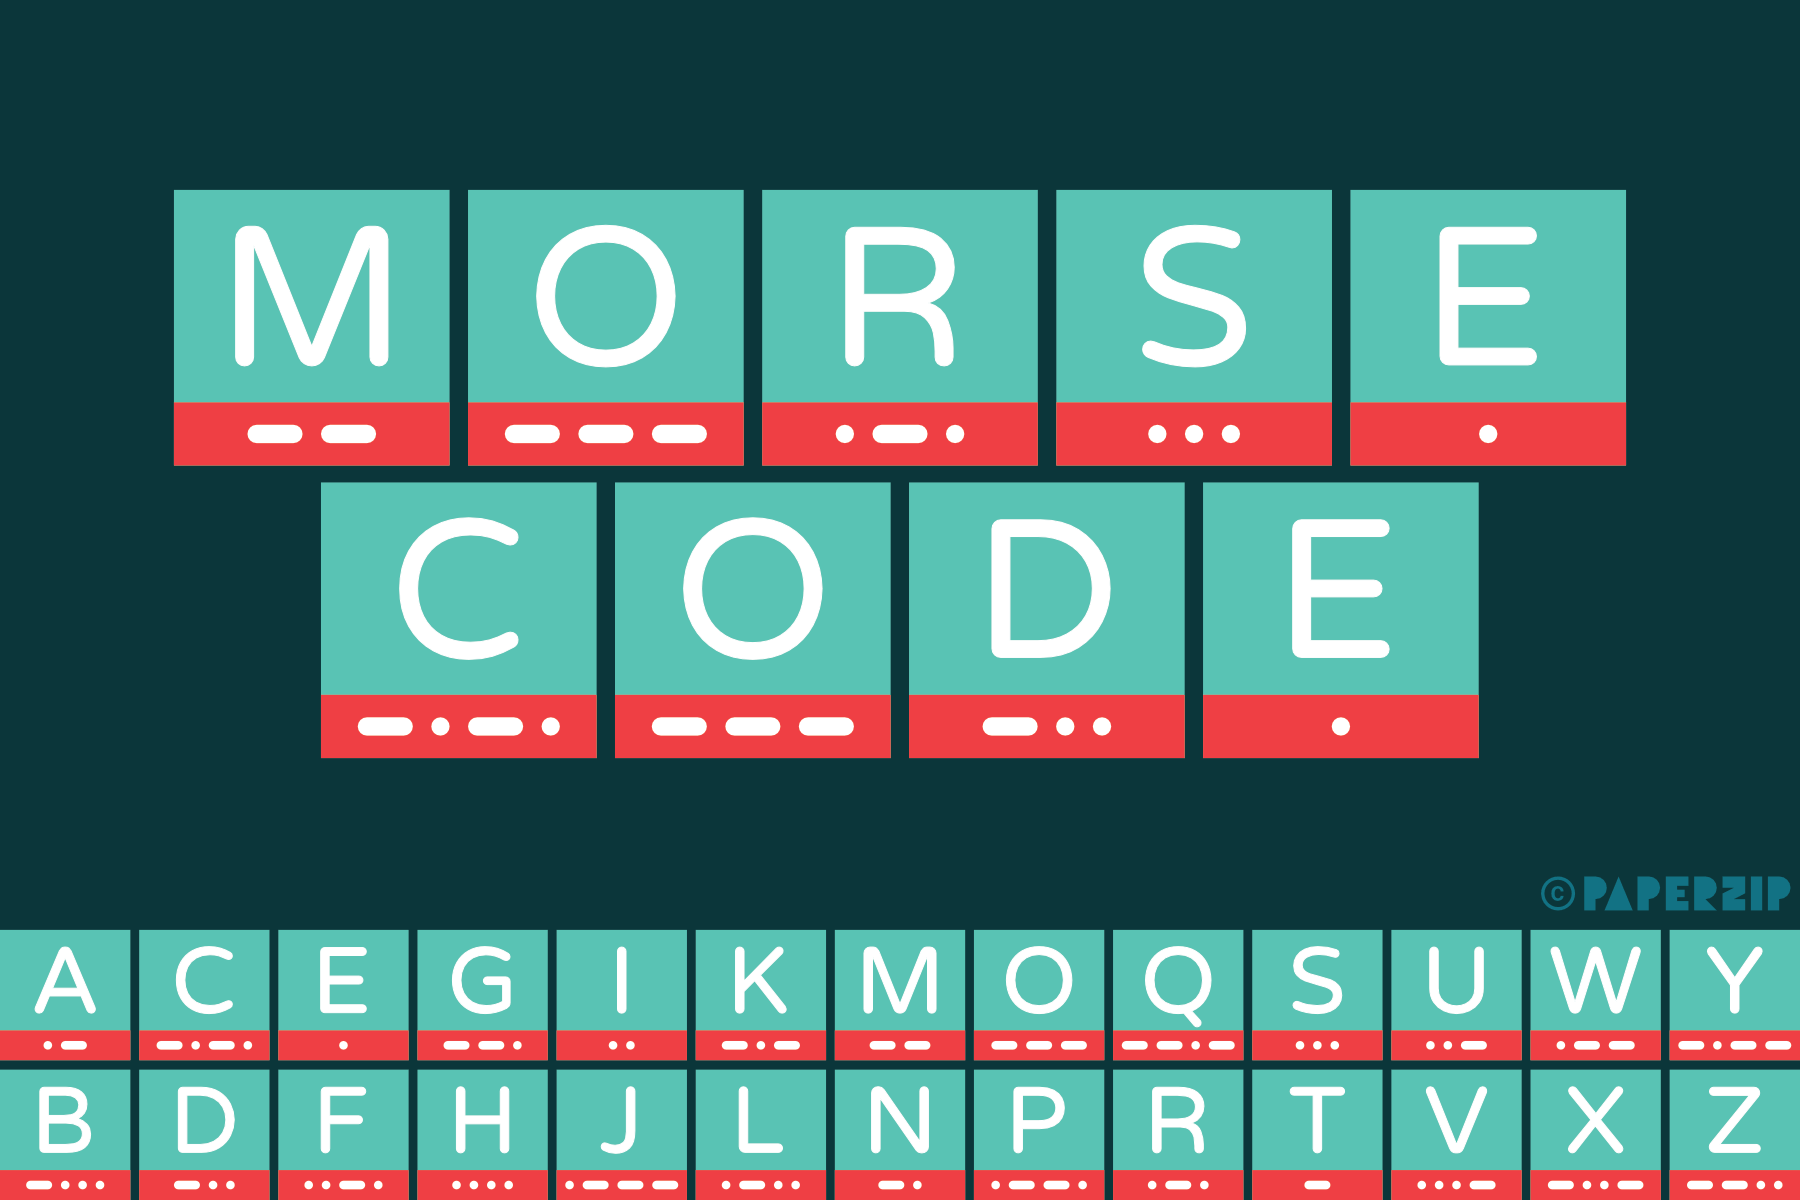 photo about Morse Code Printable named Morse Code Alphabet - PAPERZIP